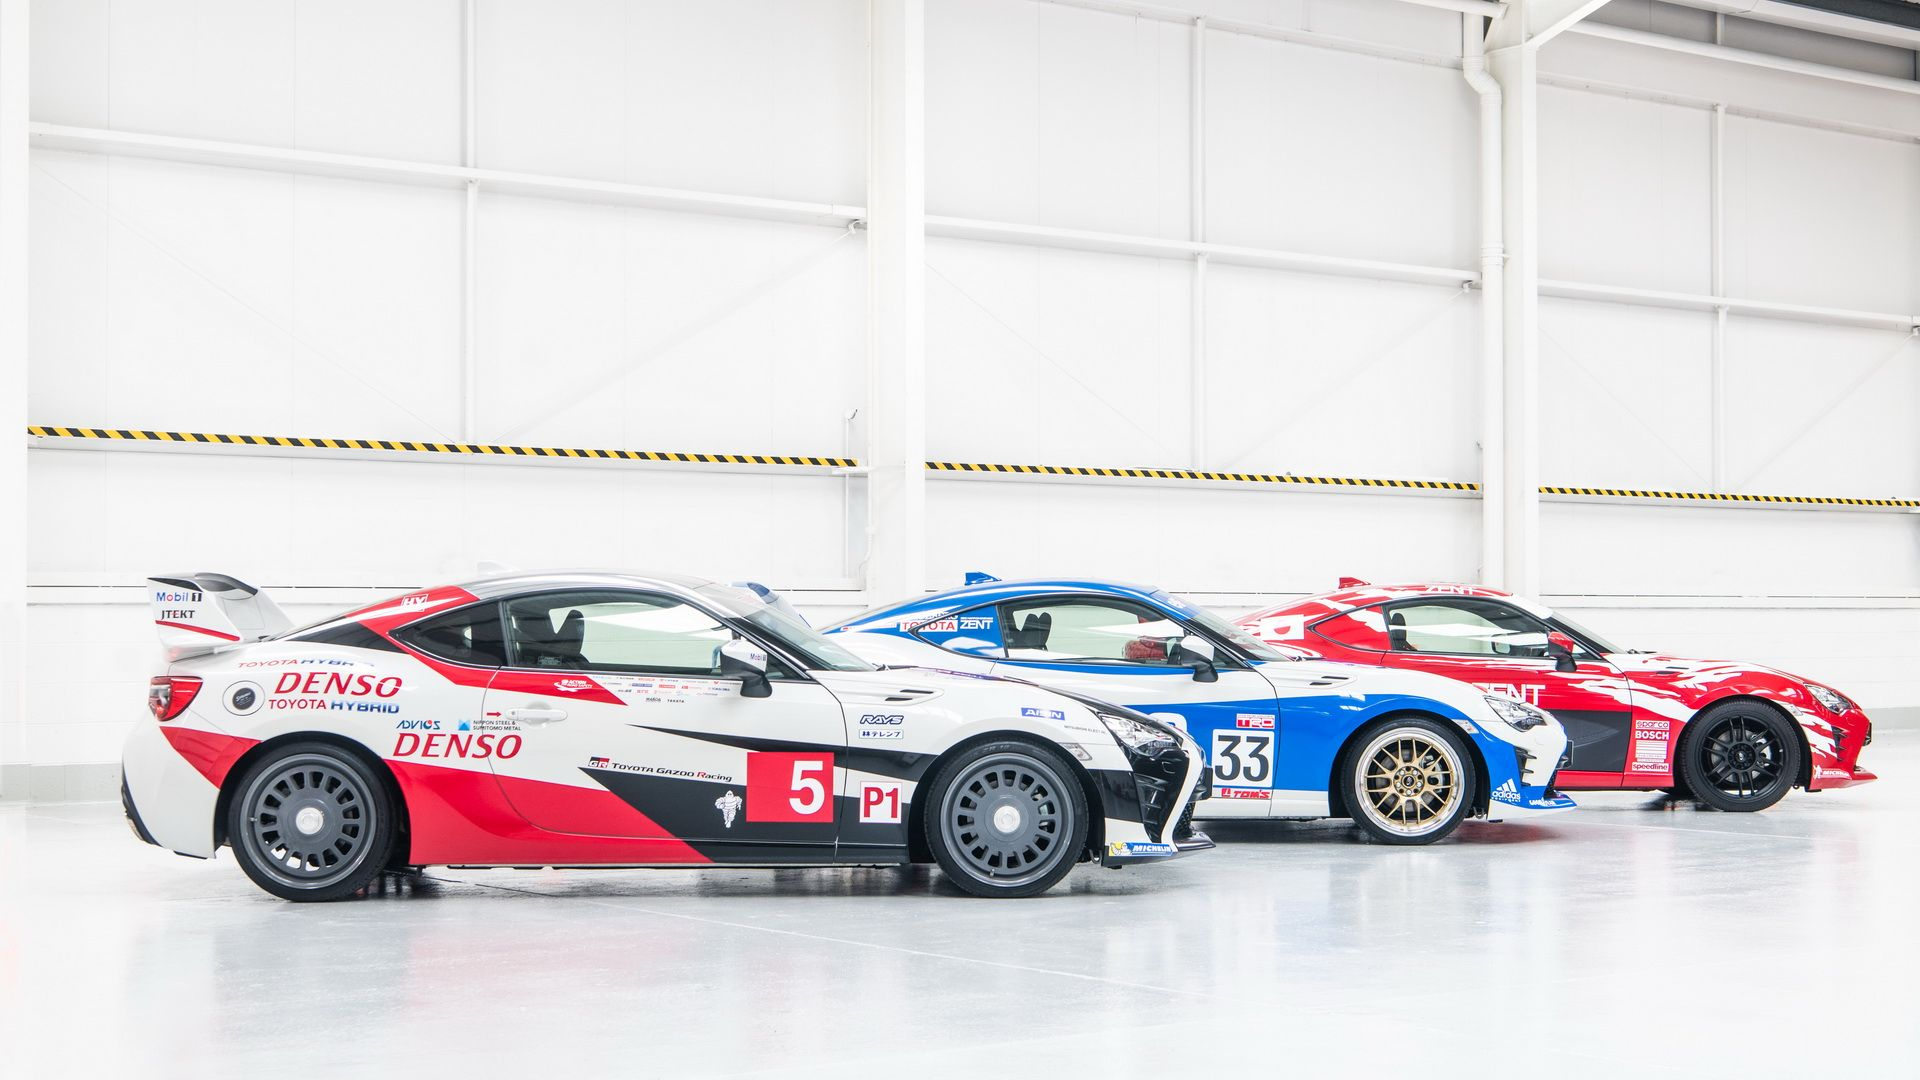 toyota-gt86-heritage-livery-24-hours-of-le-mans-18